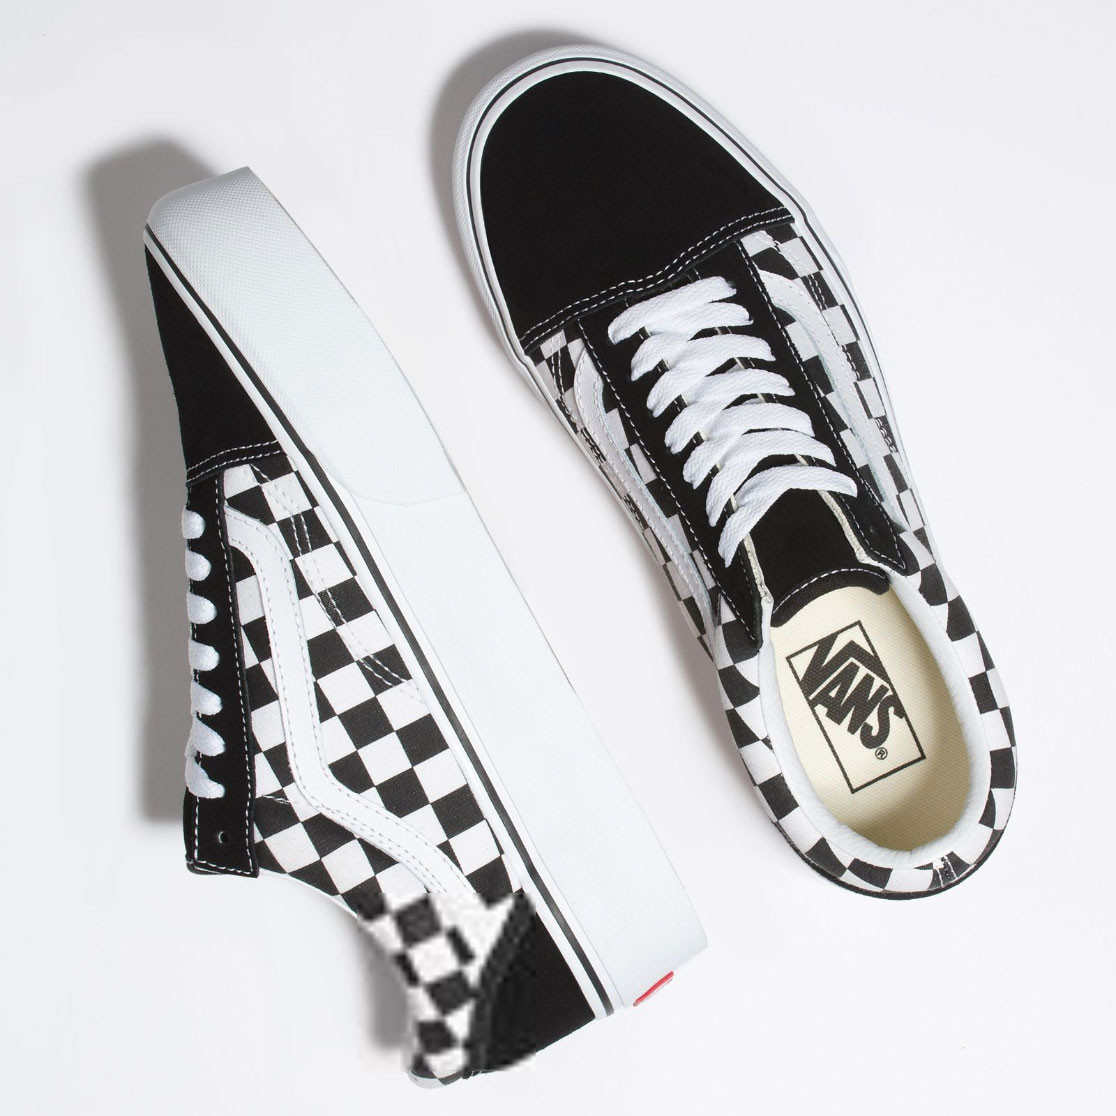 8aa52a7e6d47 Sneakers Vans Old Skool Platform checkerboard black true white ...